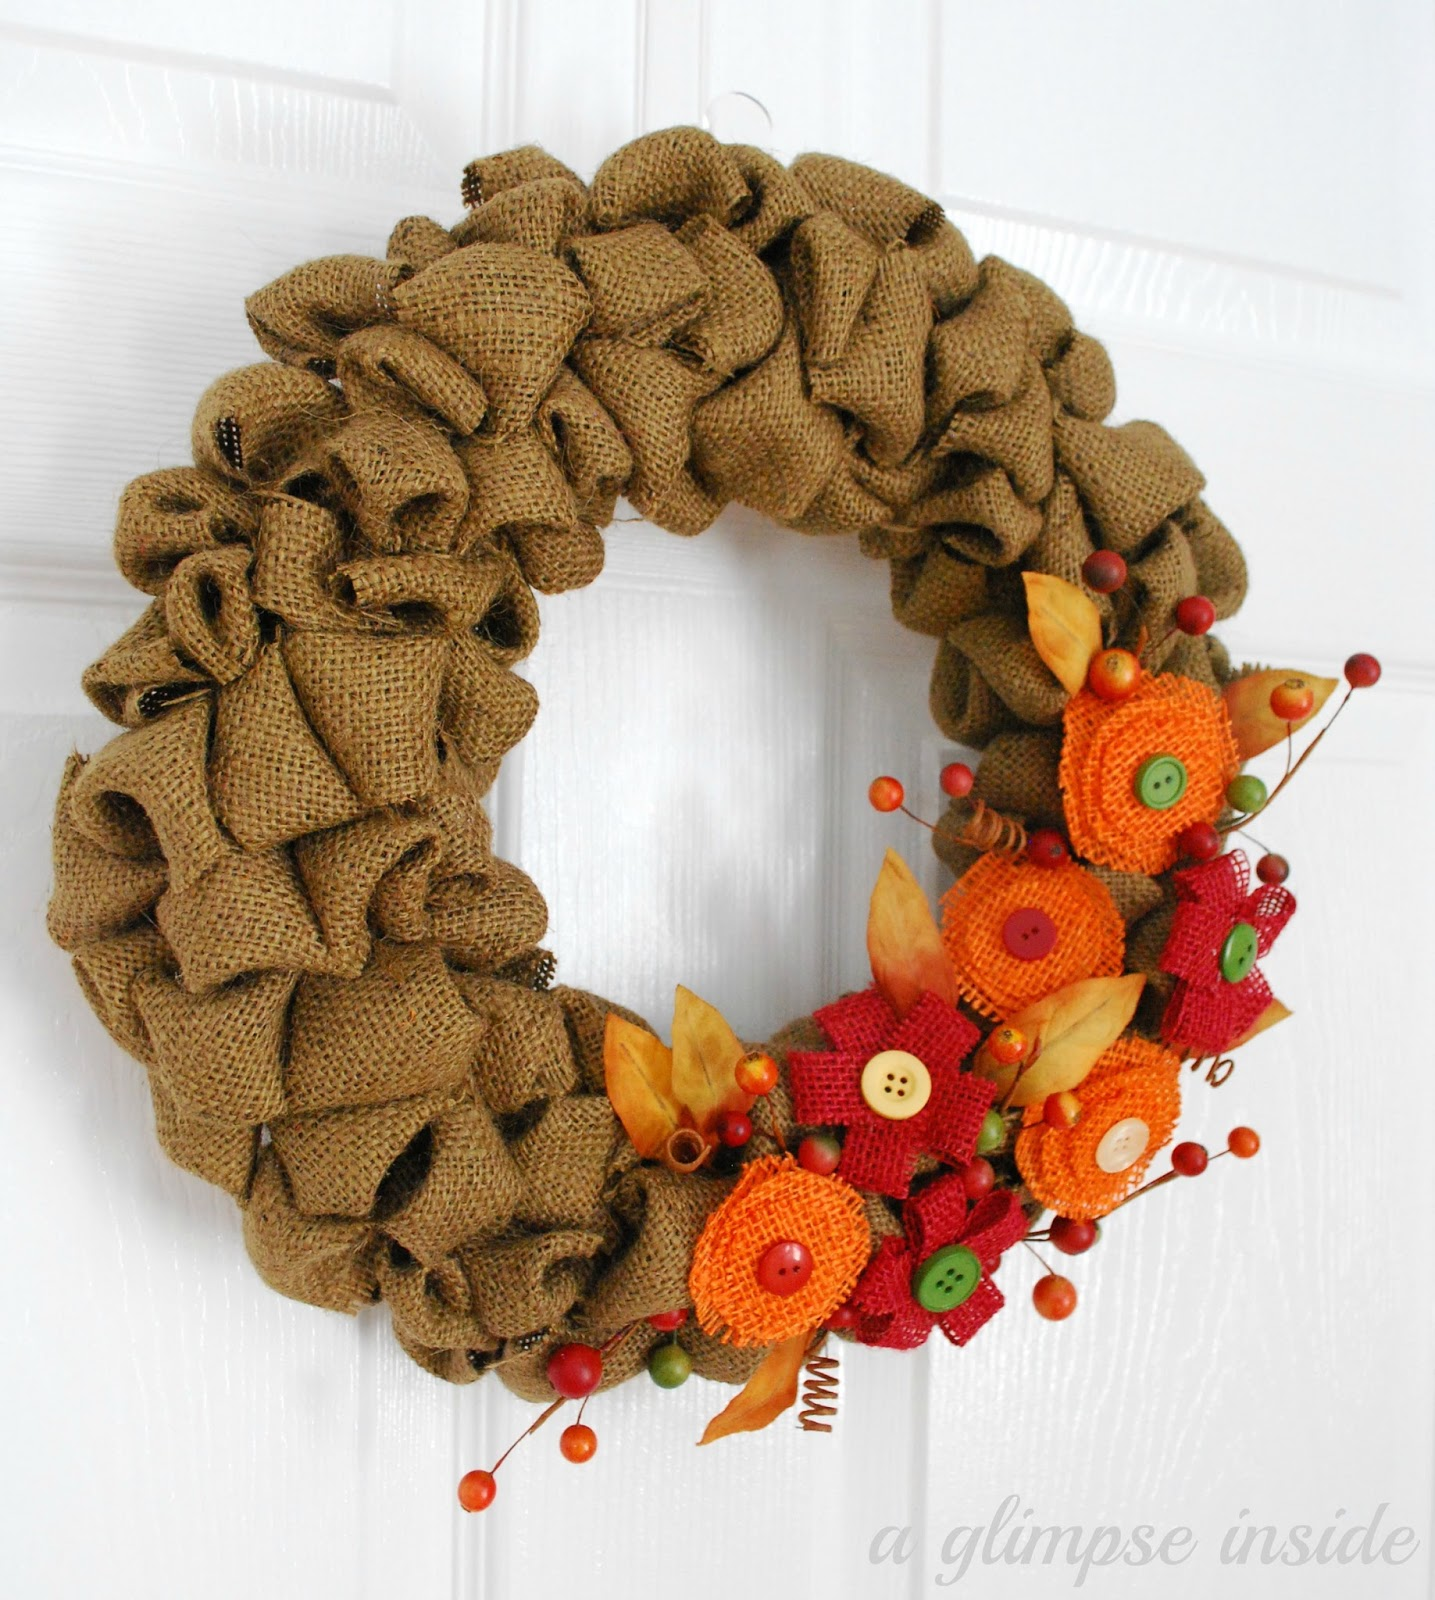 A Glimpse Inside Bubble Burlap Fall Wreath Tutorial